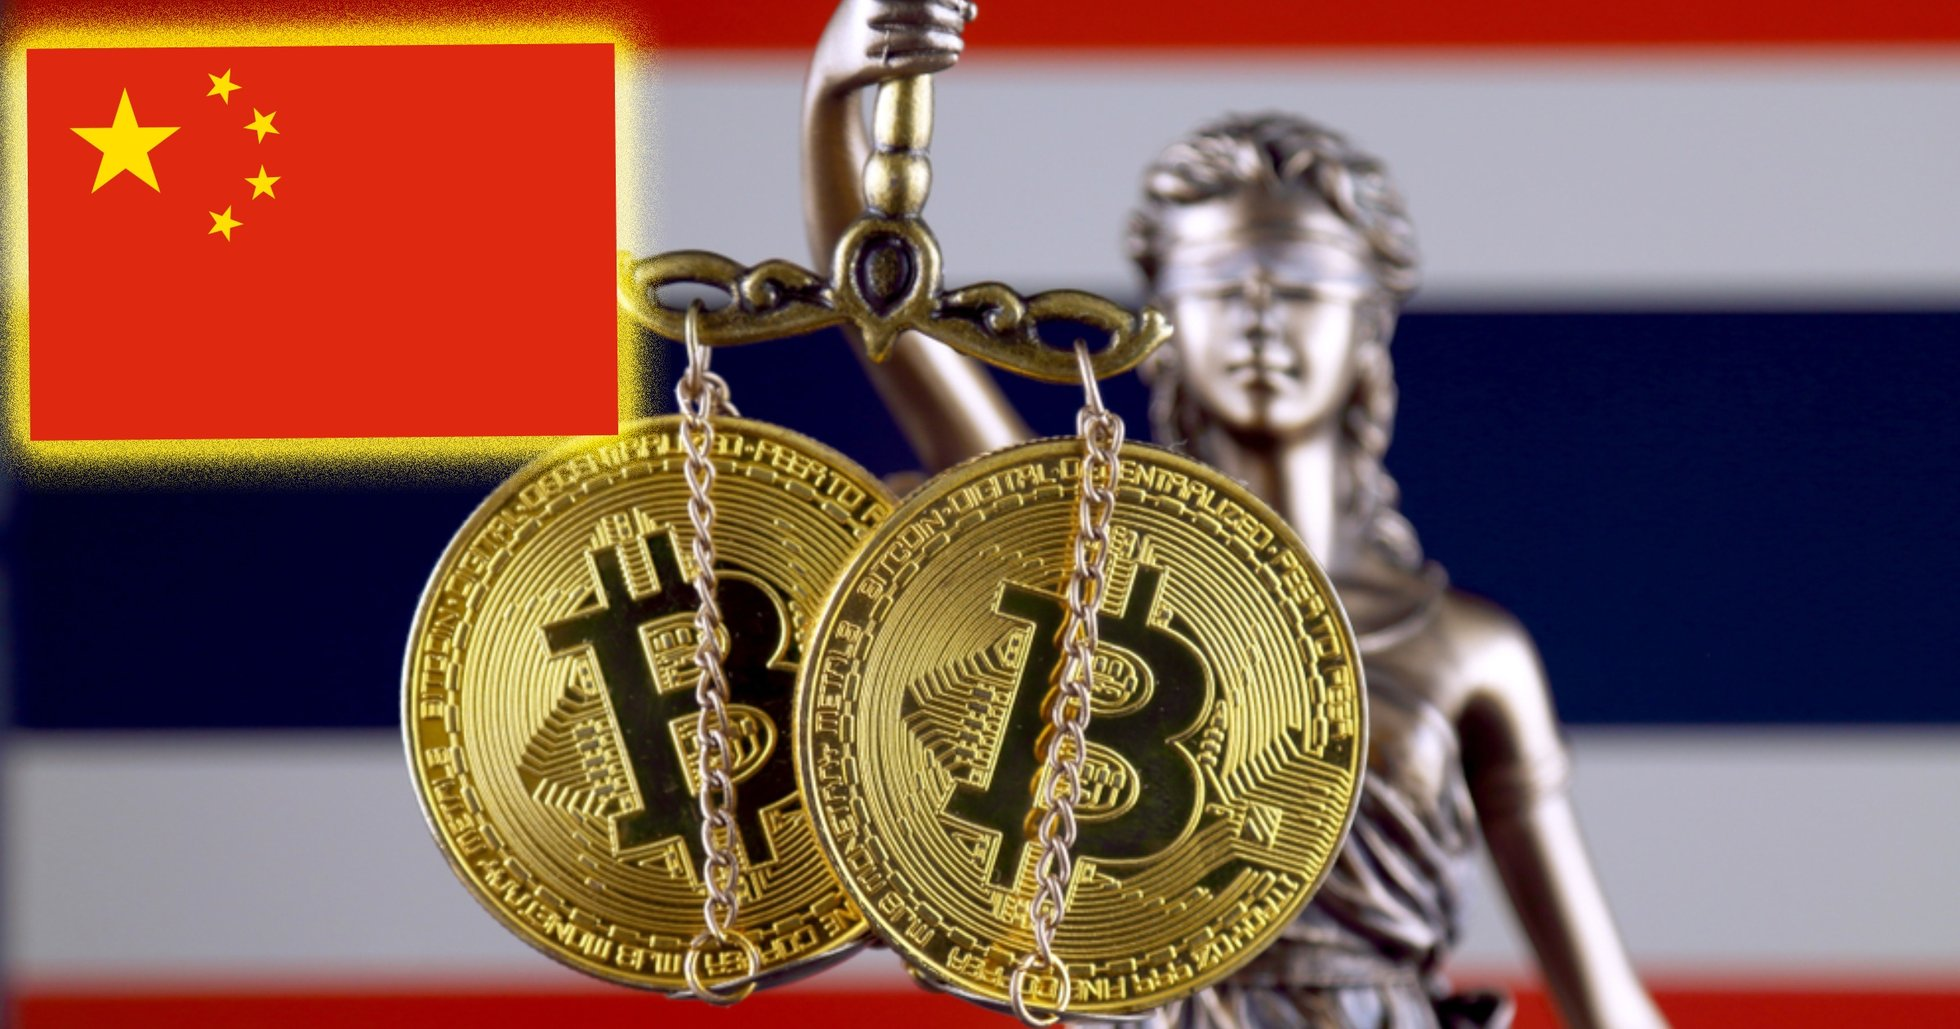 24 Chinese nationals arrested in Thailand – suspected of big crypto-fraud